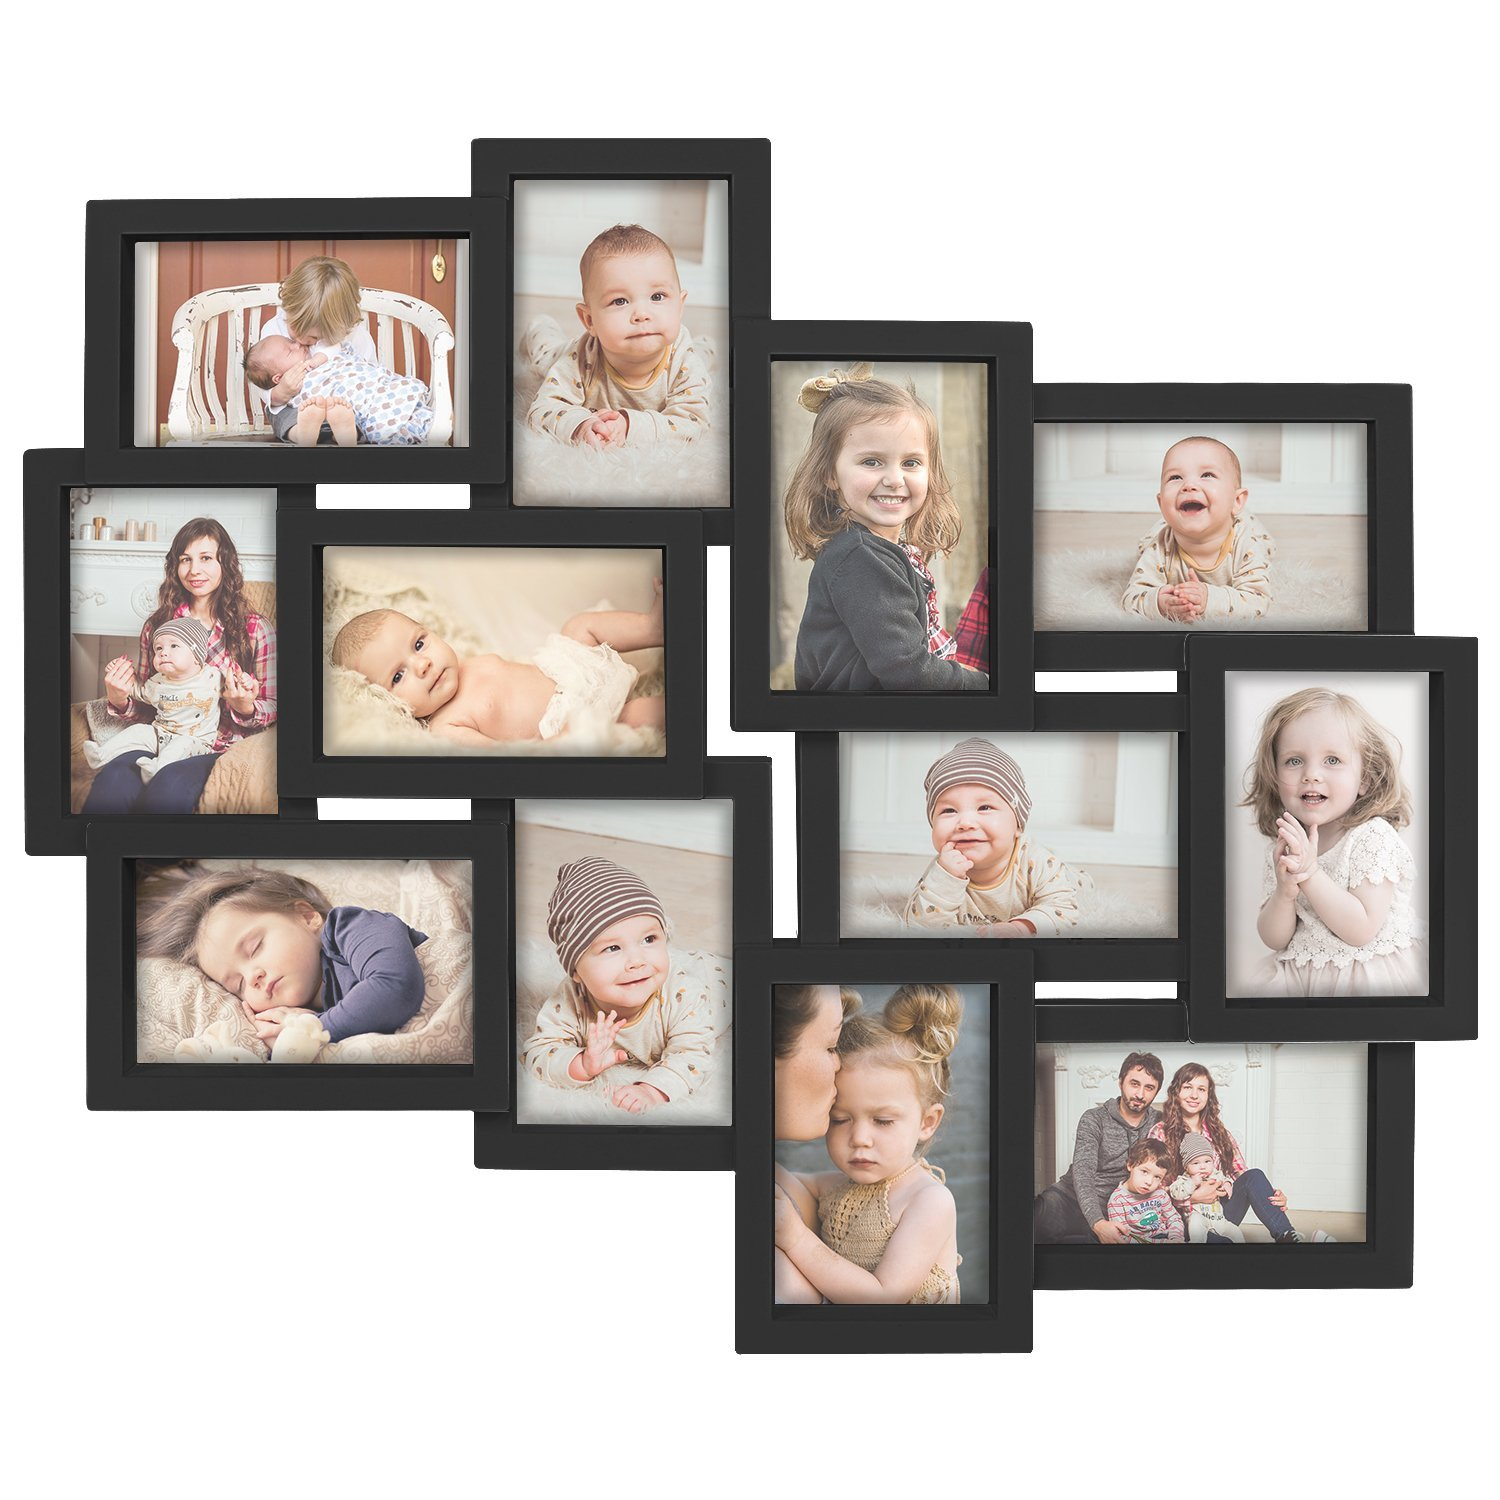 DL furniture Designs Family Rules Dimensional Collage White Picture Frame, 12 Option, 6-4x6 & 6-4x4, Black